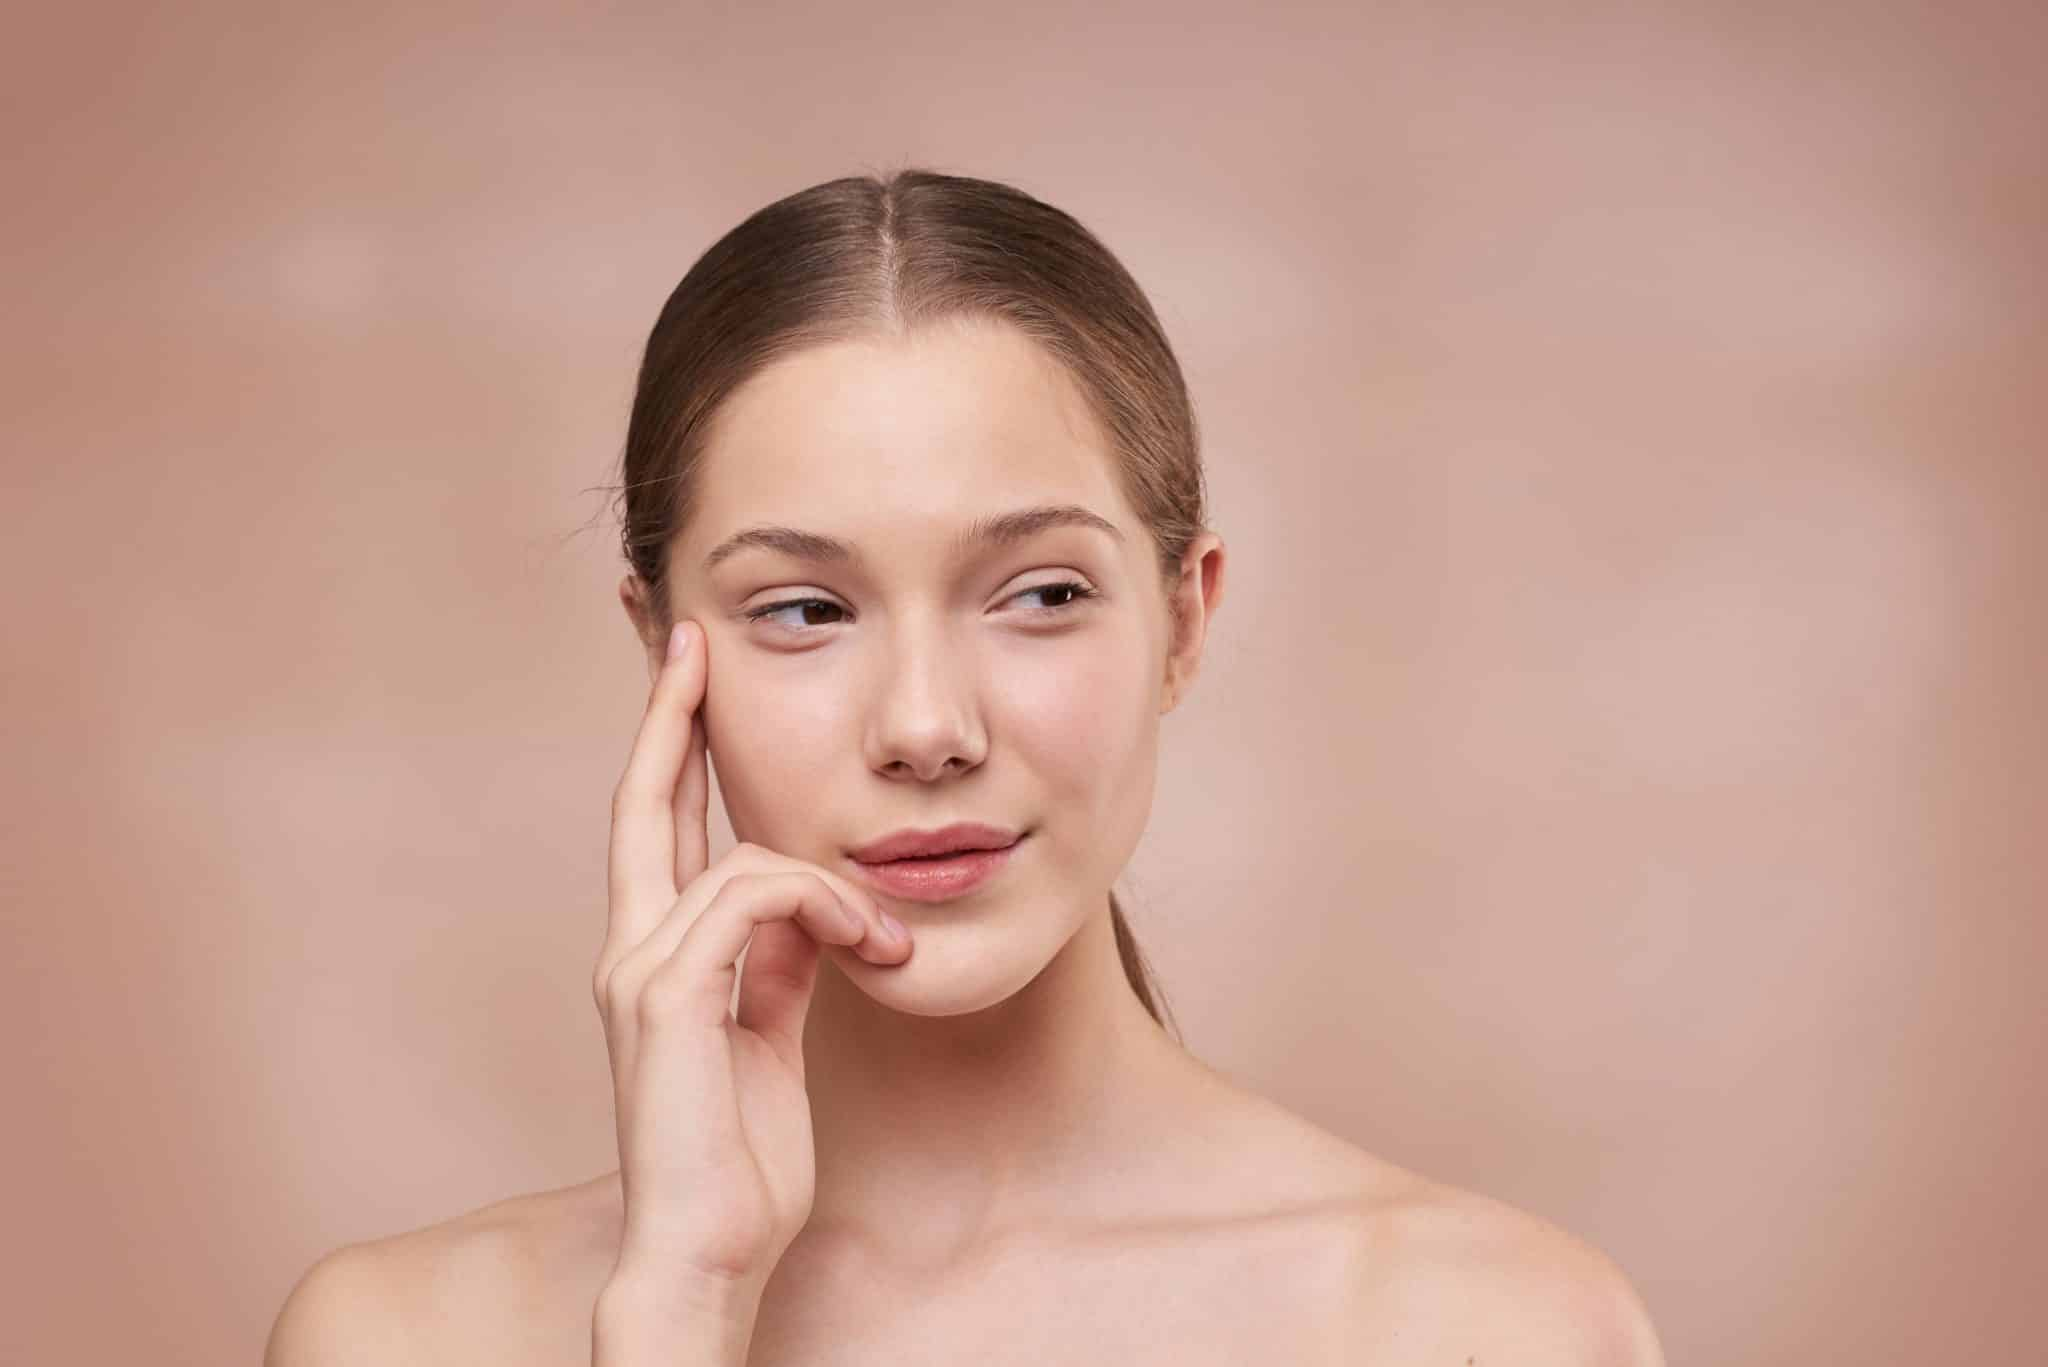 Ask OVME: Should I Try A Dermatologist Treatment for Under-Eye Bags?